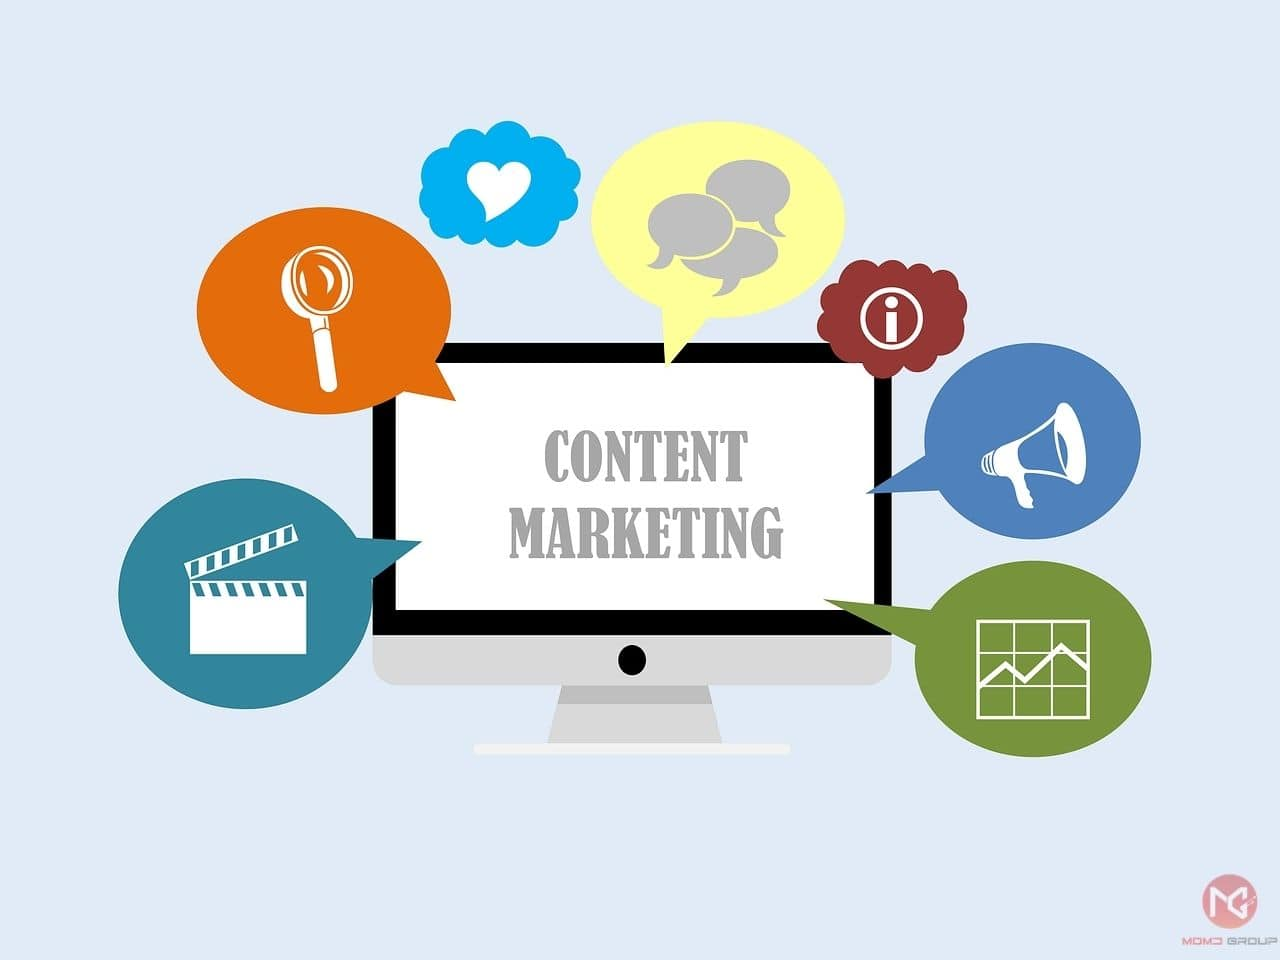 Vi-sao-can-lam-Content-Marketing-chat-luong